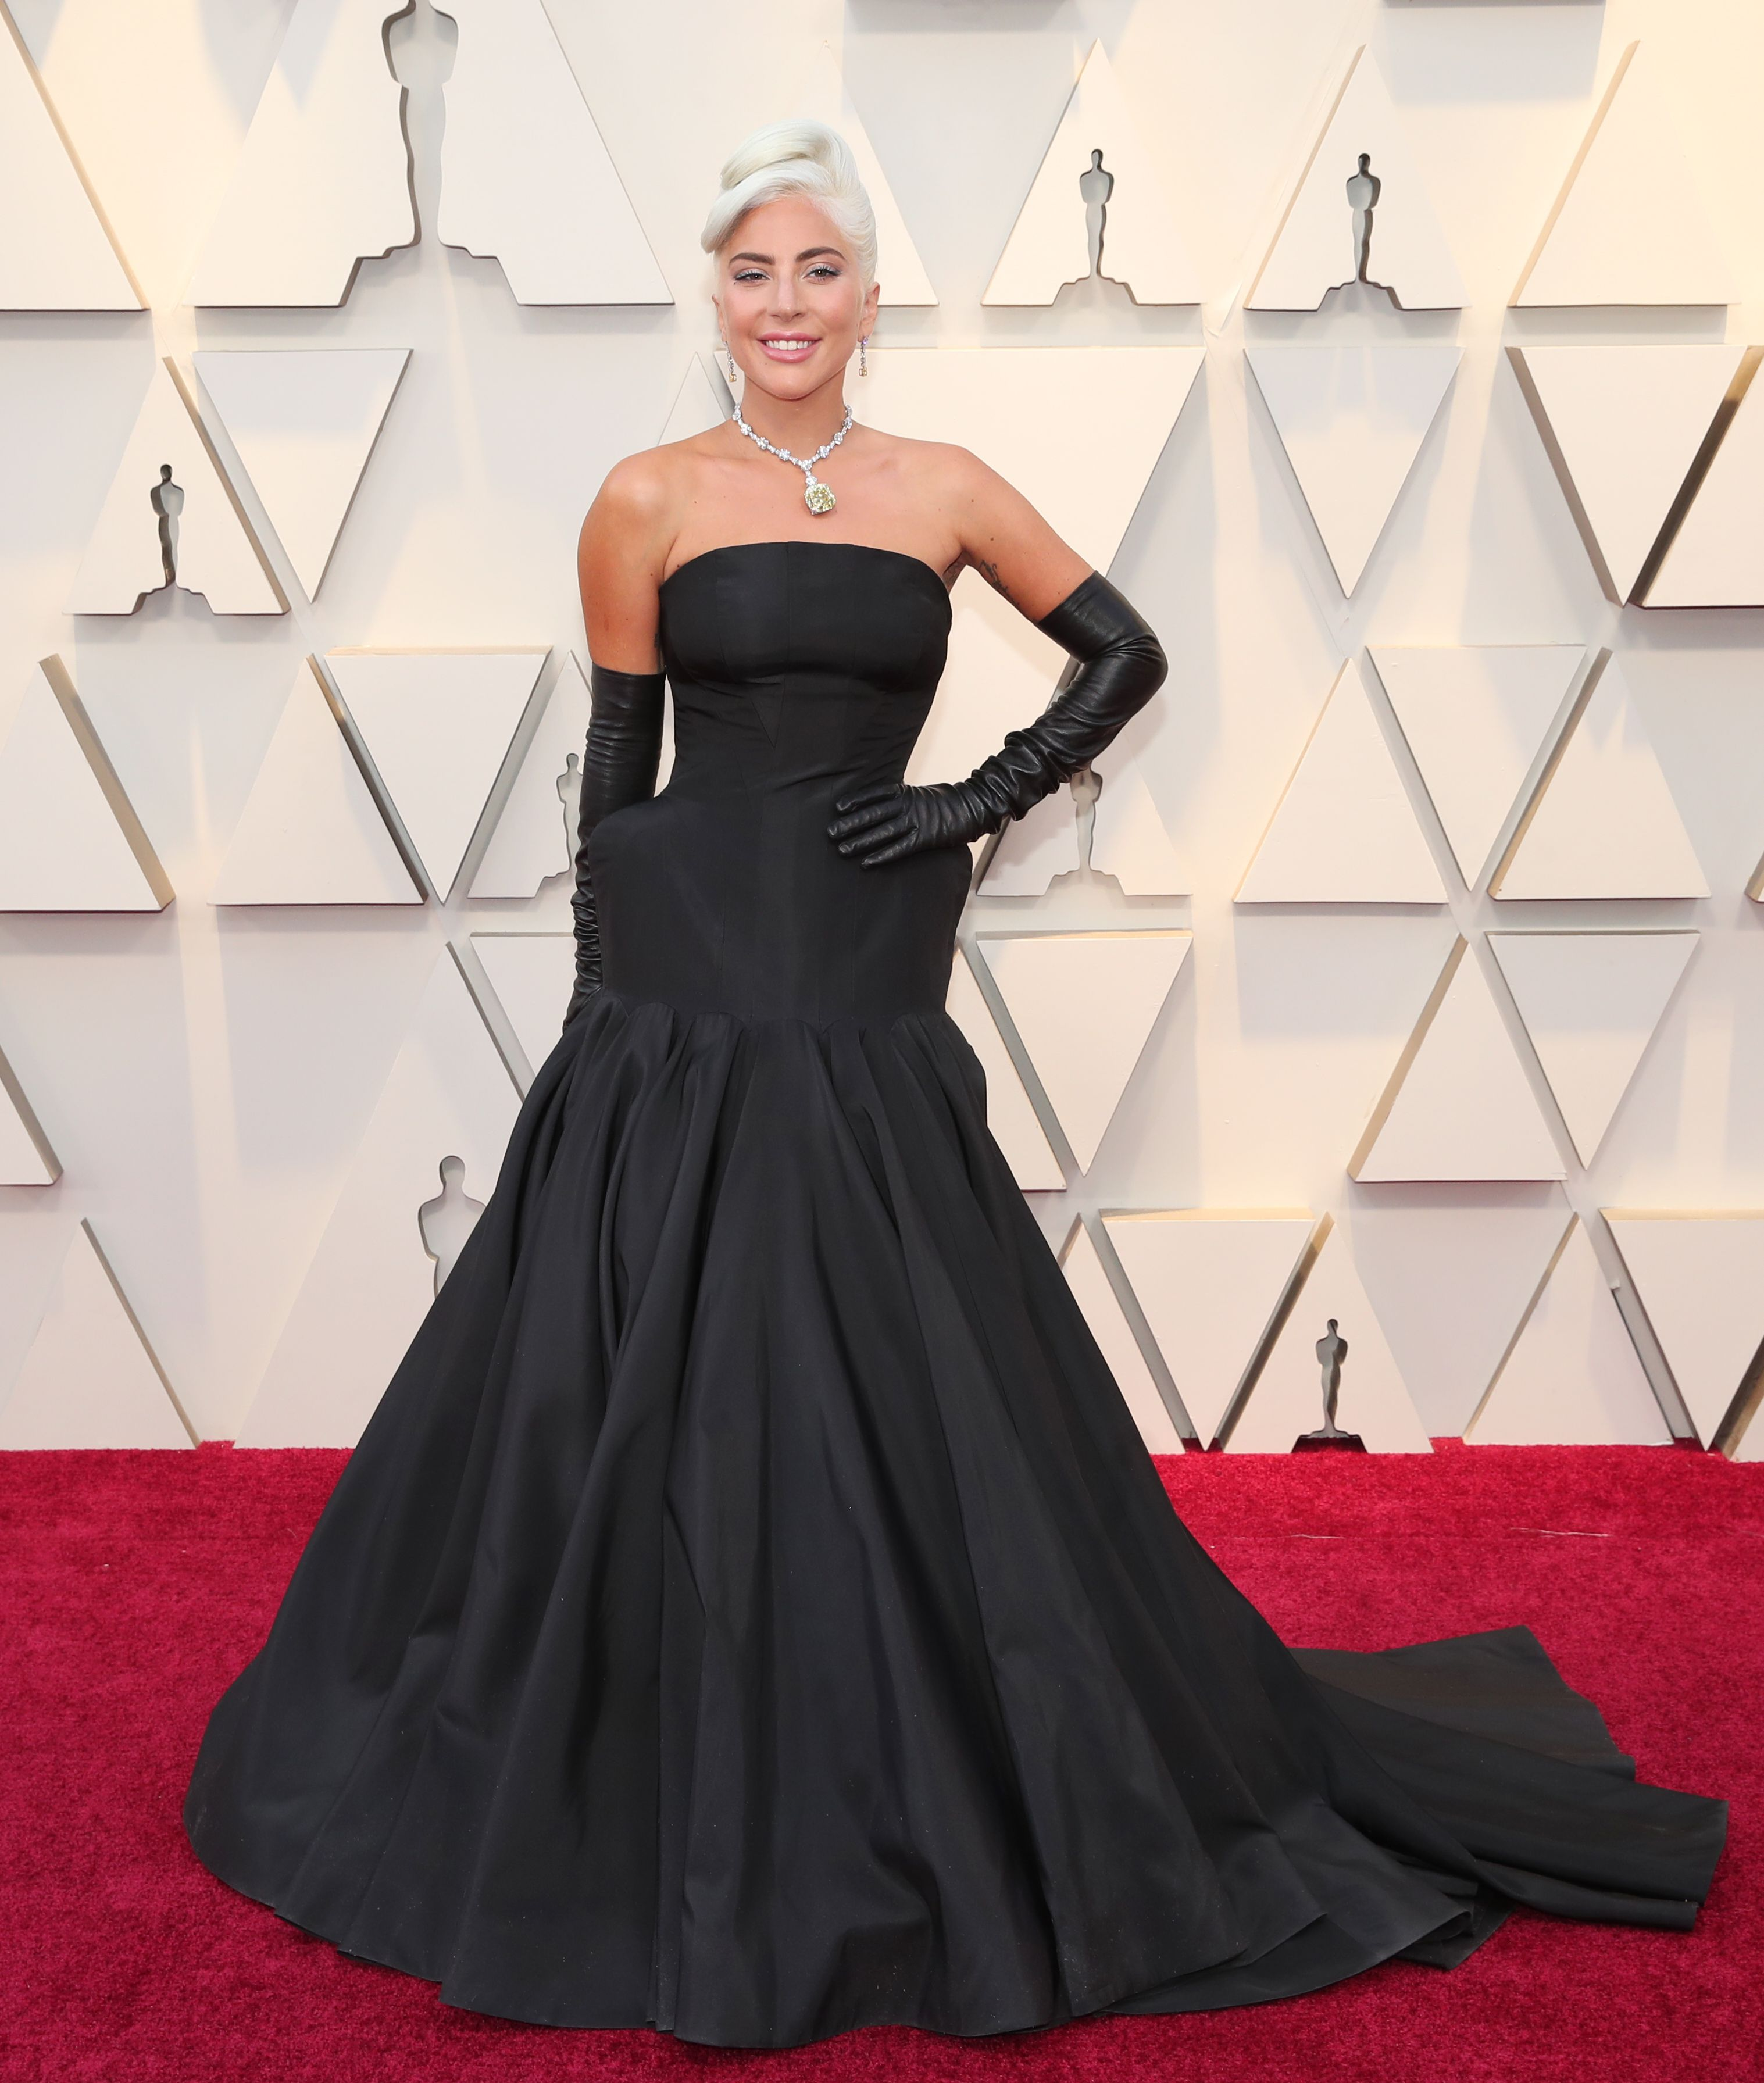 shutterstock 10113255ld Lady Gagas Oscars Look Was Sheer Old Hollywood Glamour—with a Twist